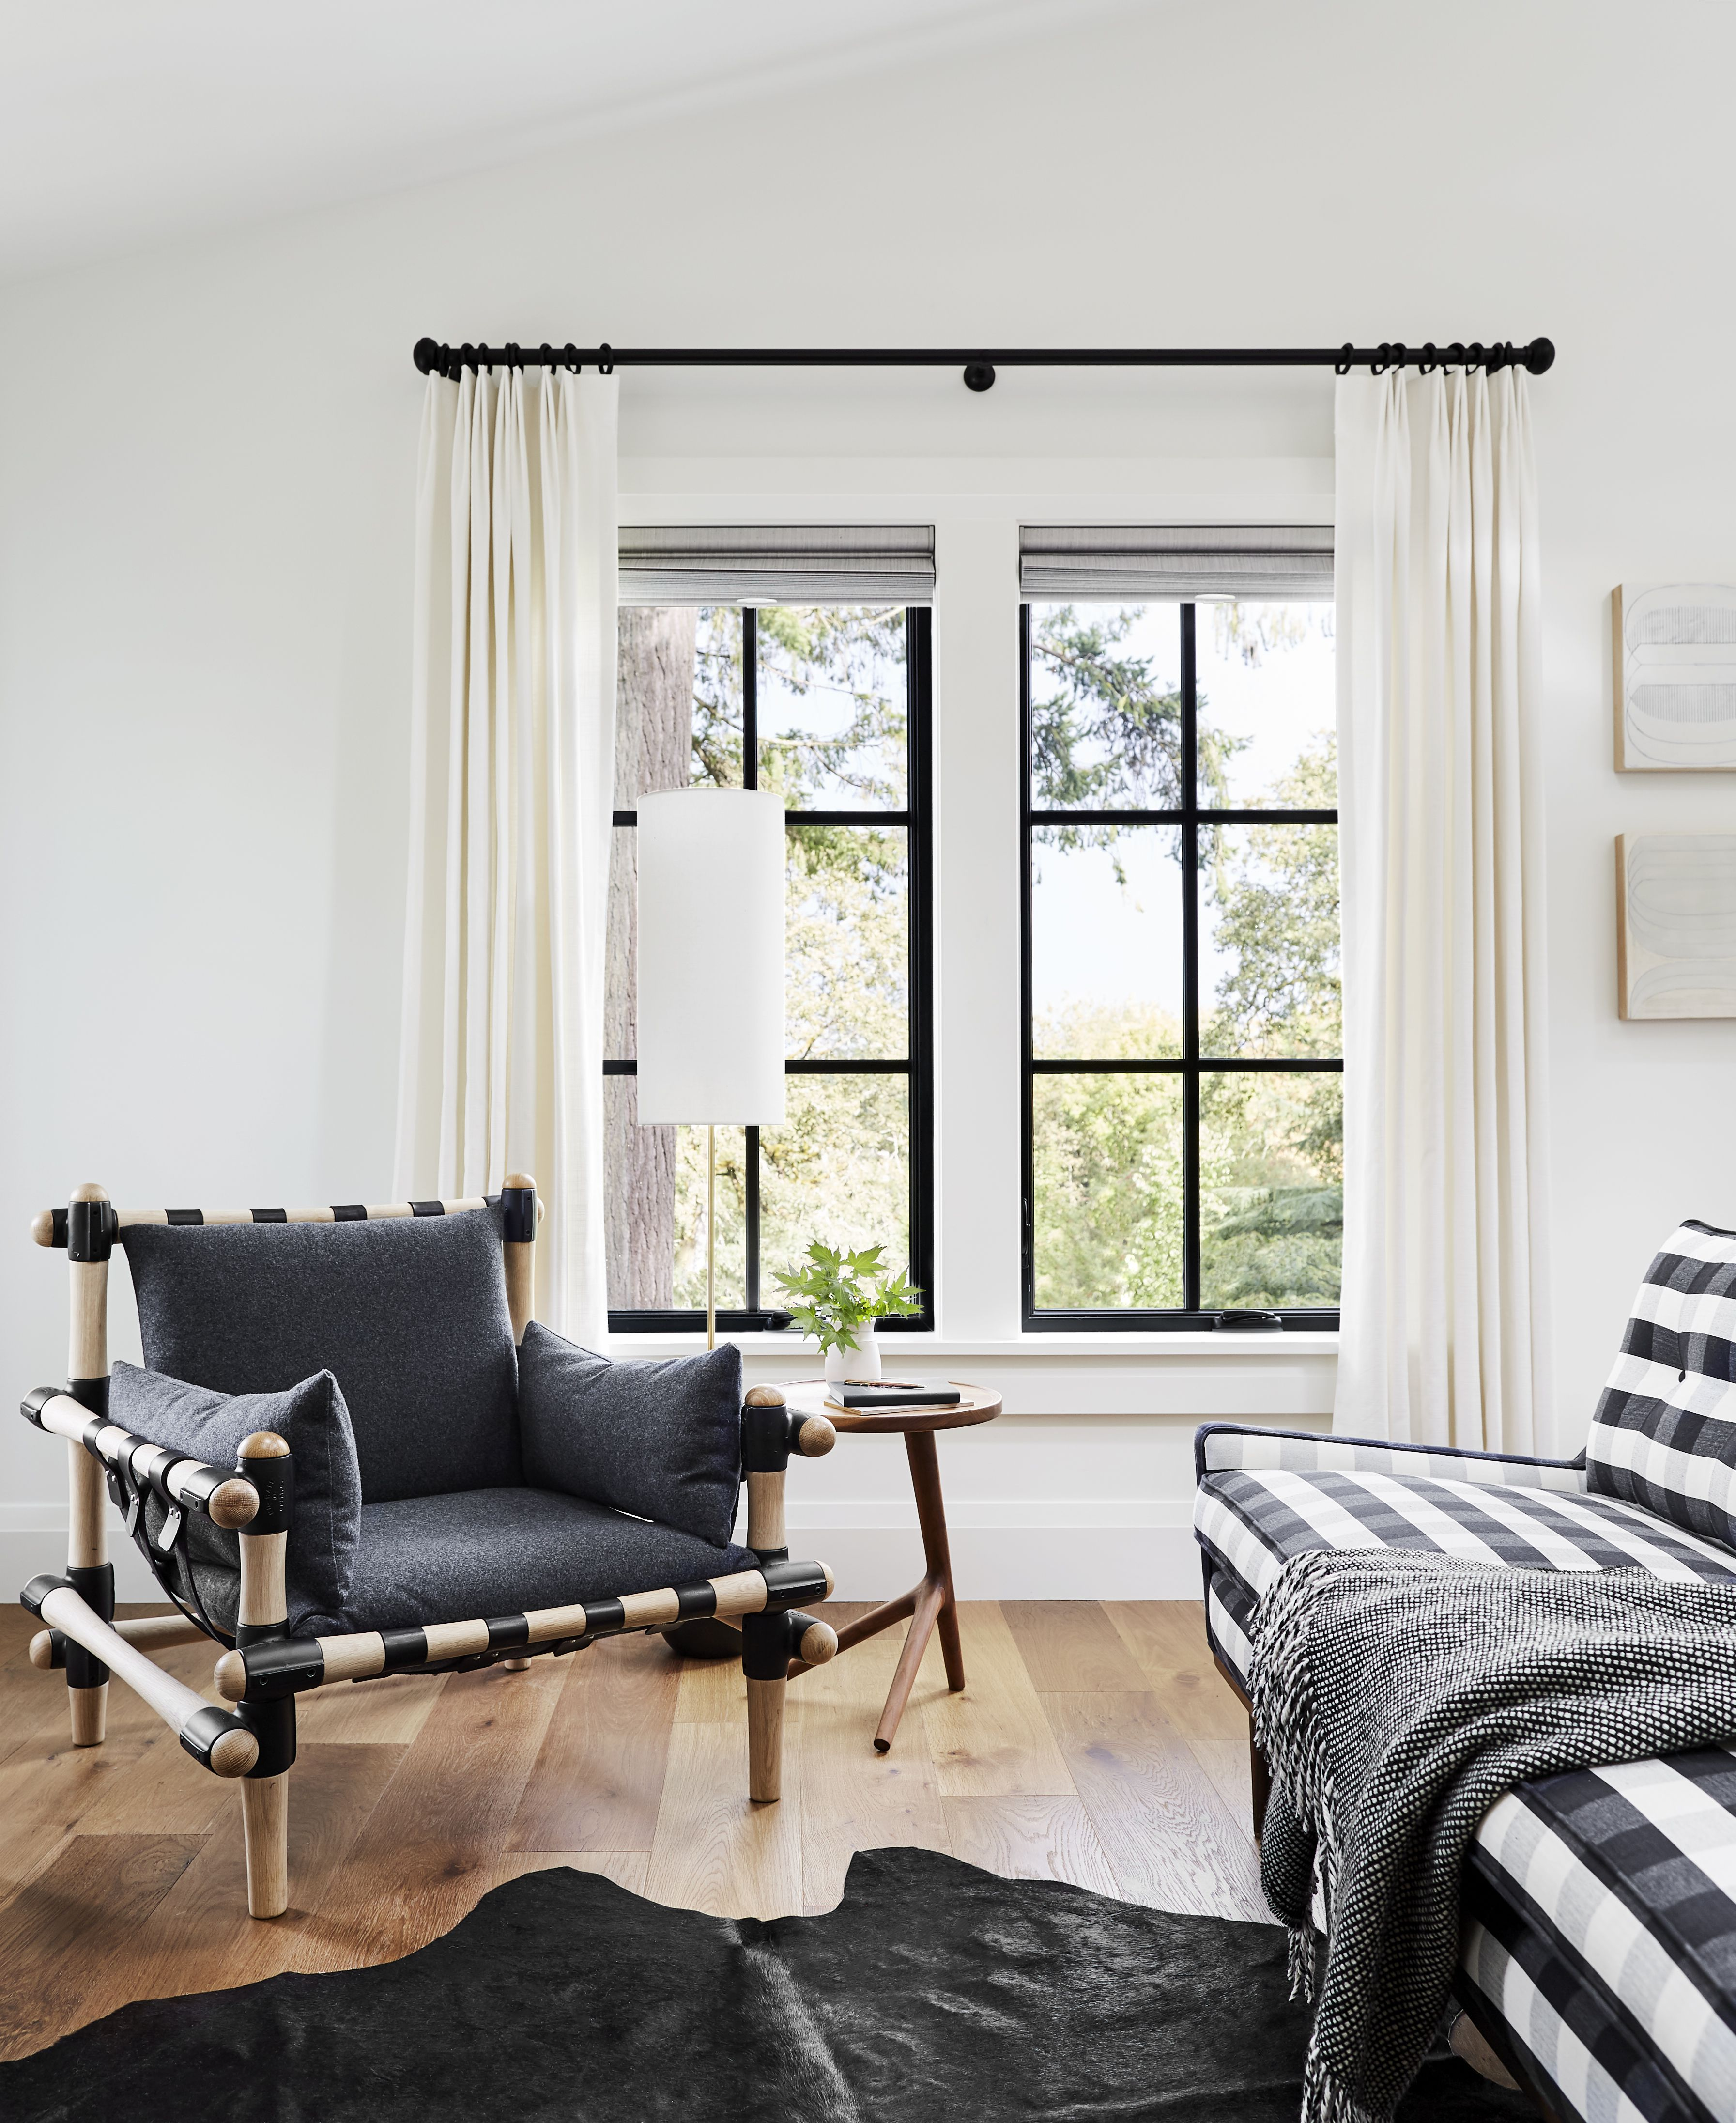 How To Get Custom-Looking Window Treatments On A Budget